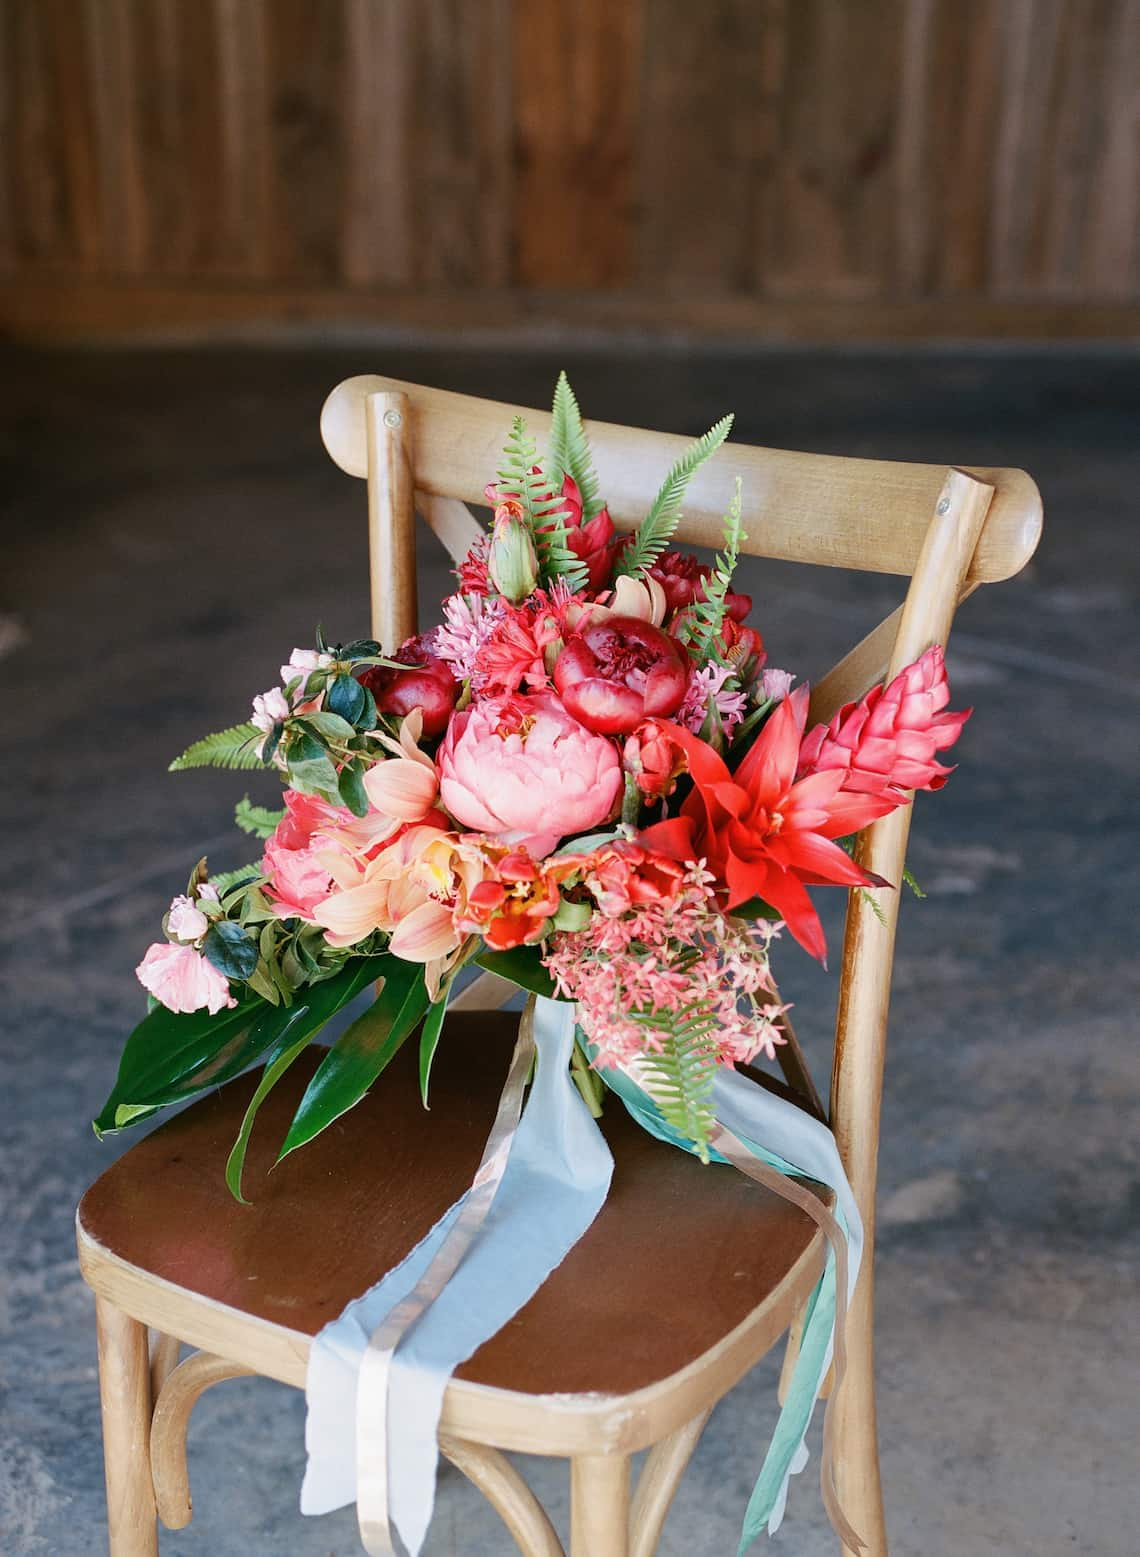 Modern Tropical Bouquet Sitting on a Chair